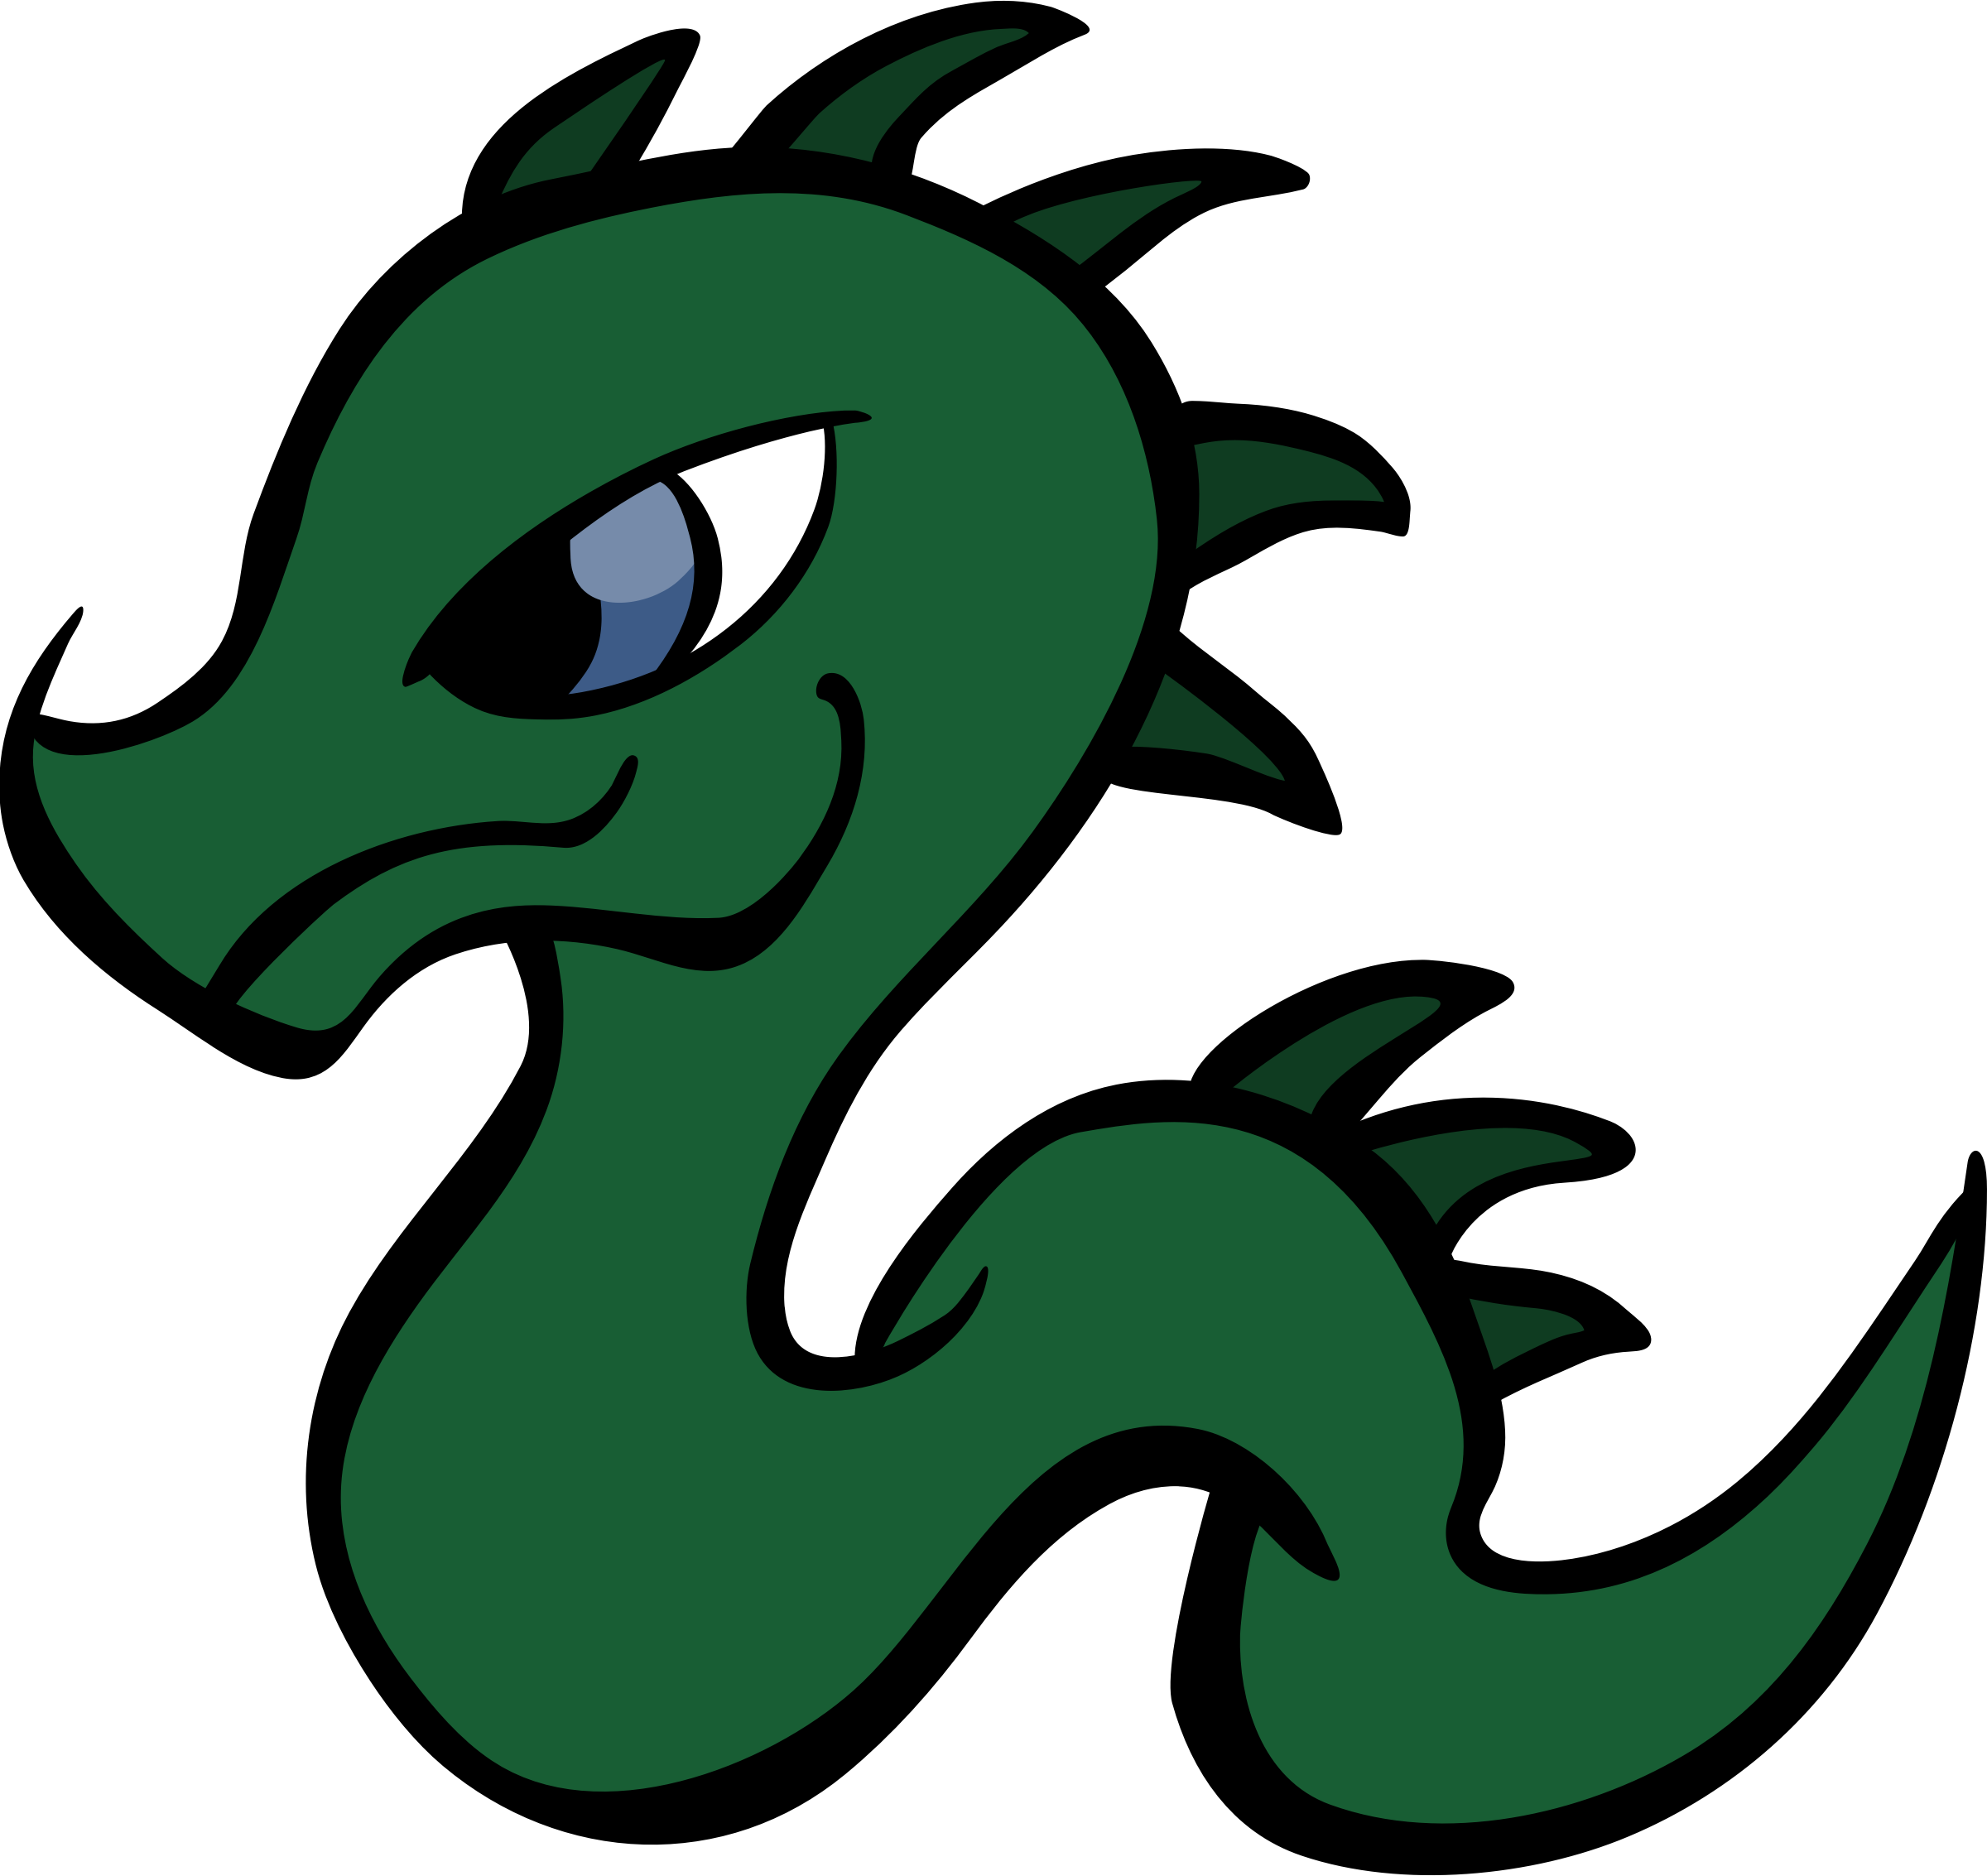 Dragon crown clipart freeuse Clipart Cc - clipart freeuse